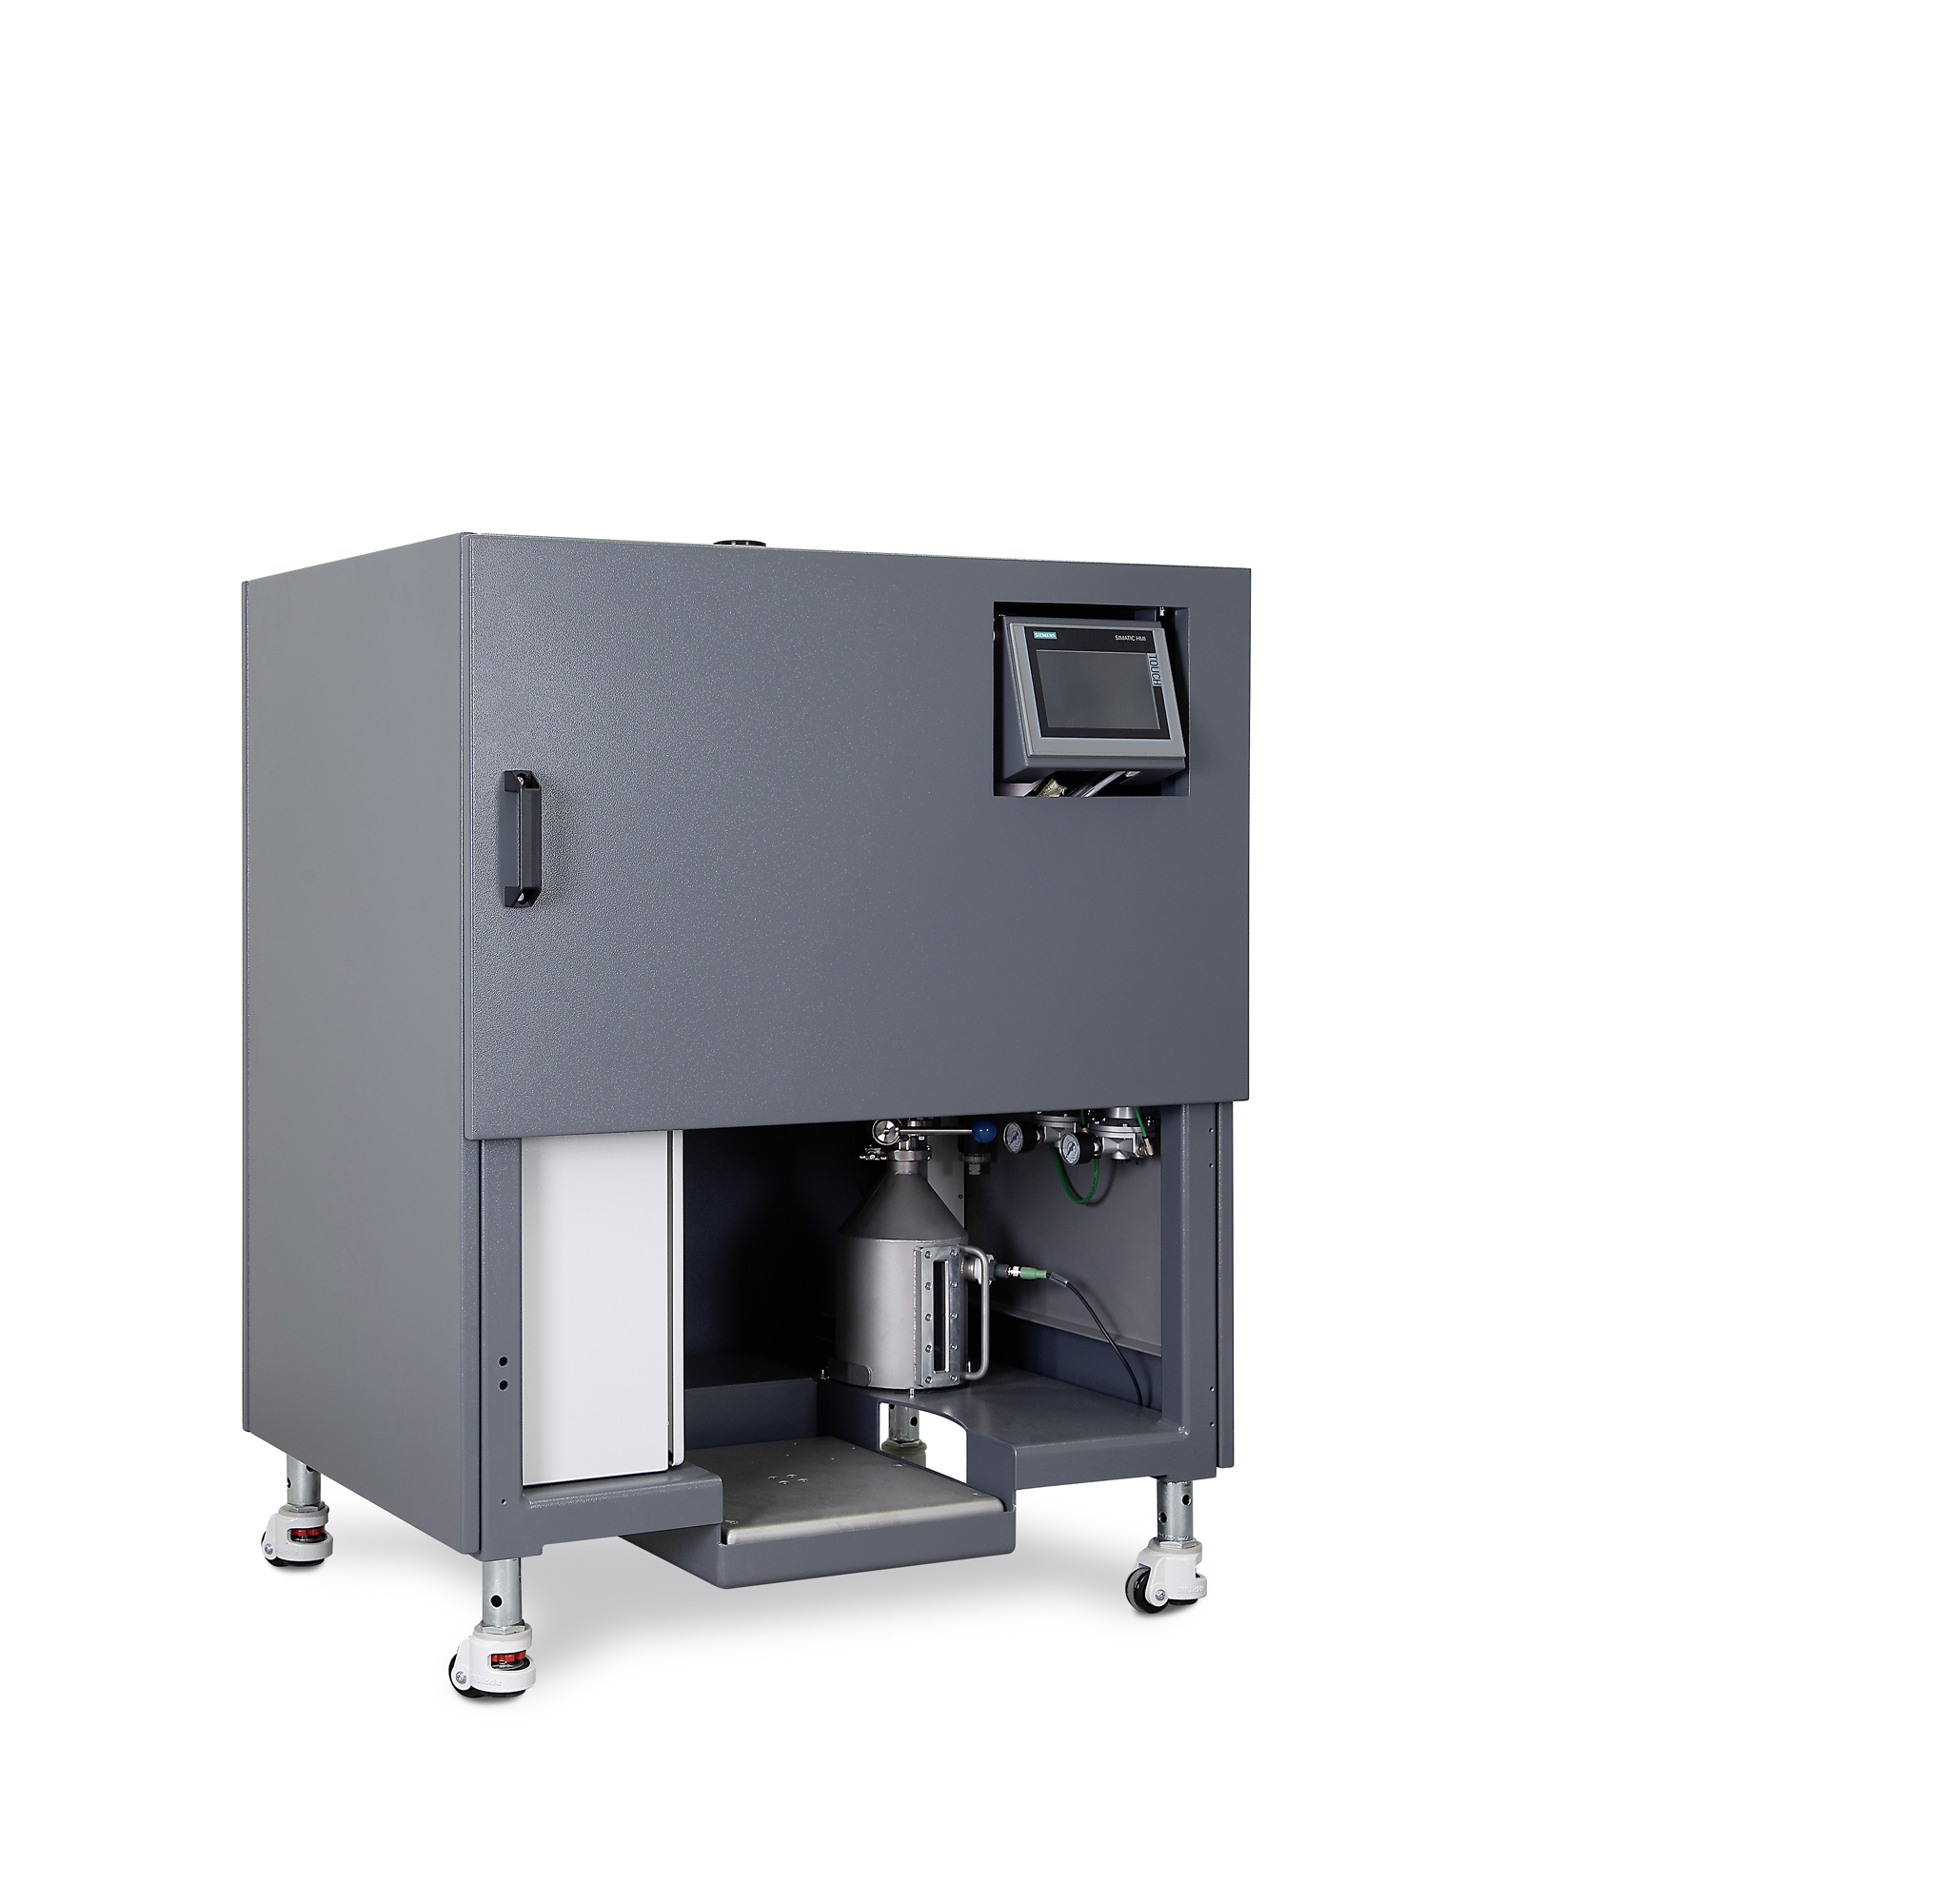 Ultrasonic Sieving Station MPS X1